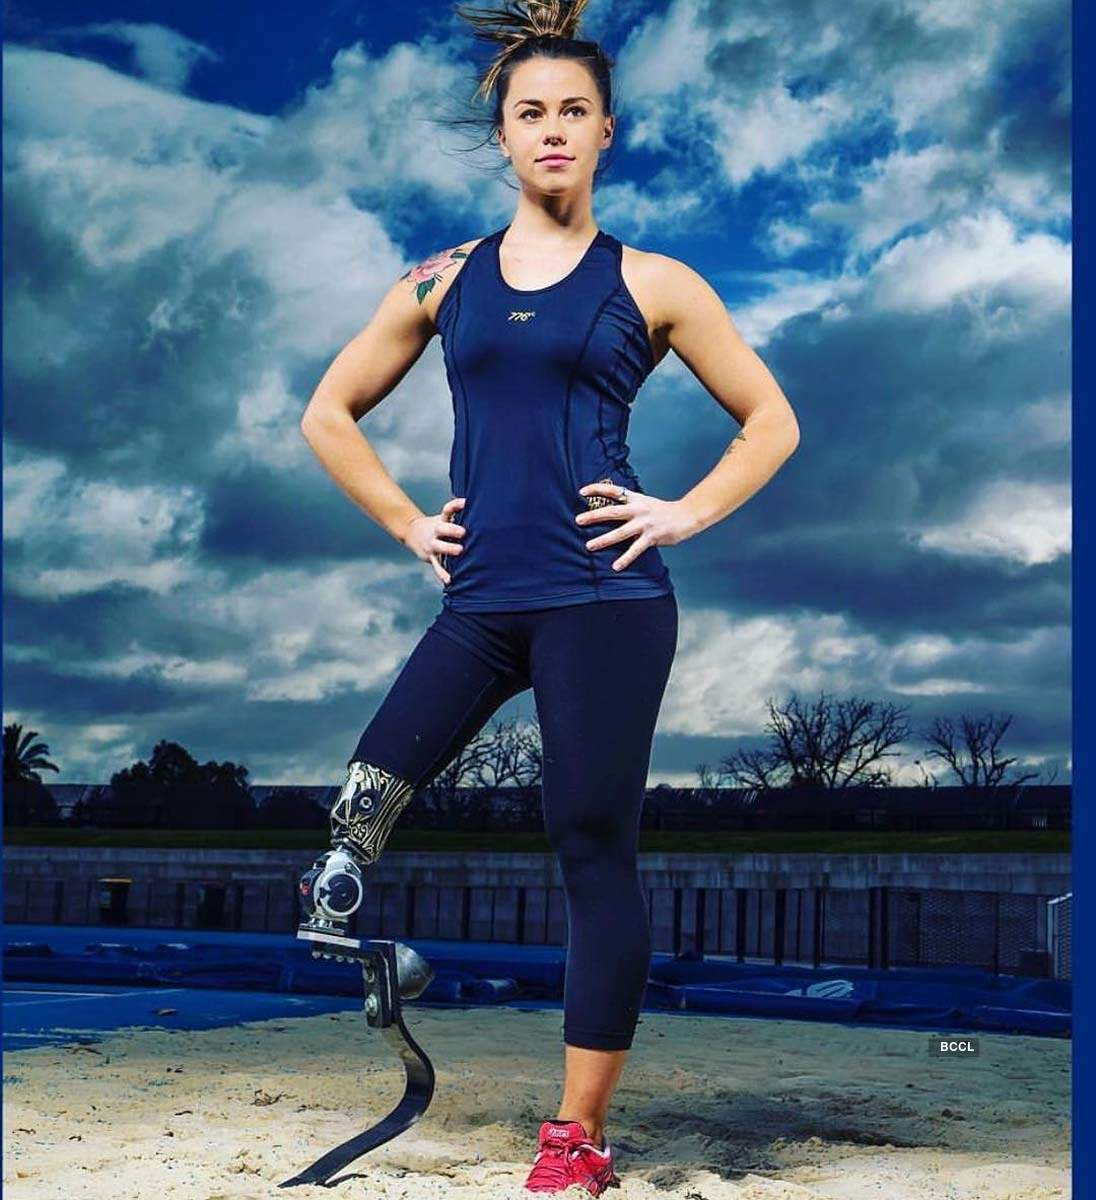 These pictures of Paralympic gold medalist Kelly Cartwright will crush your mental barriers